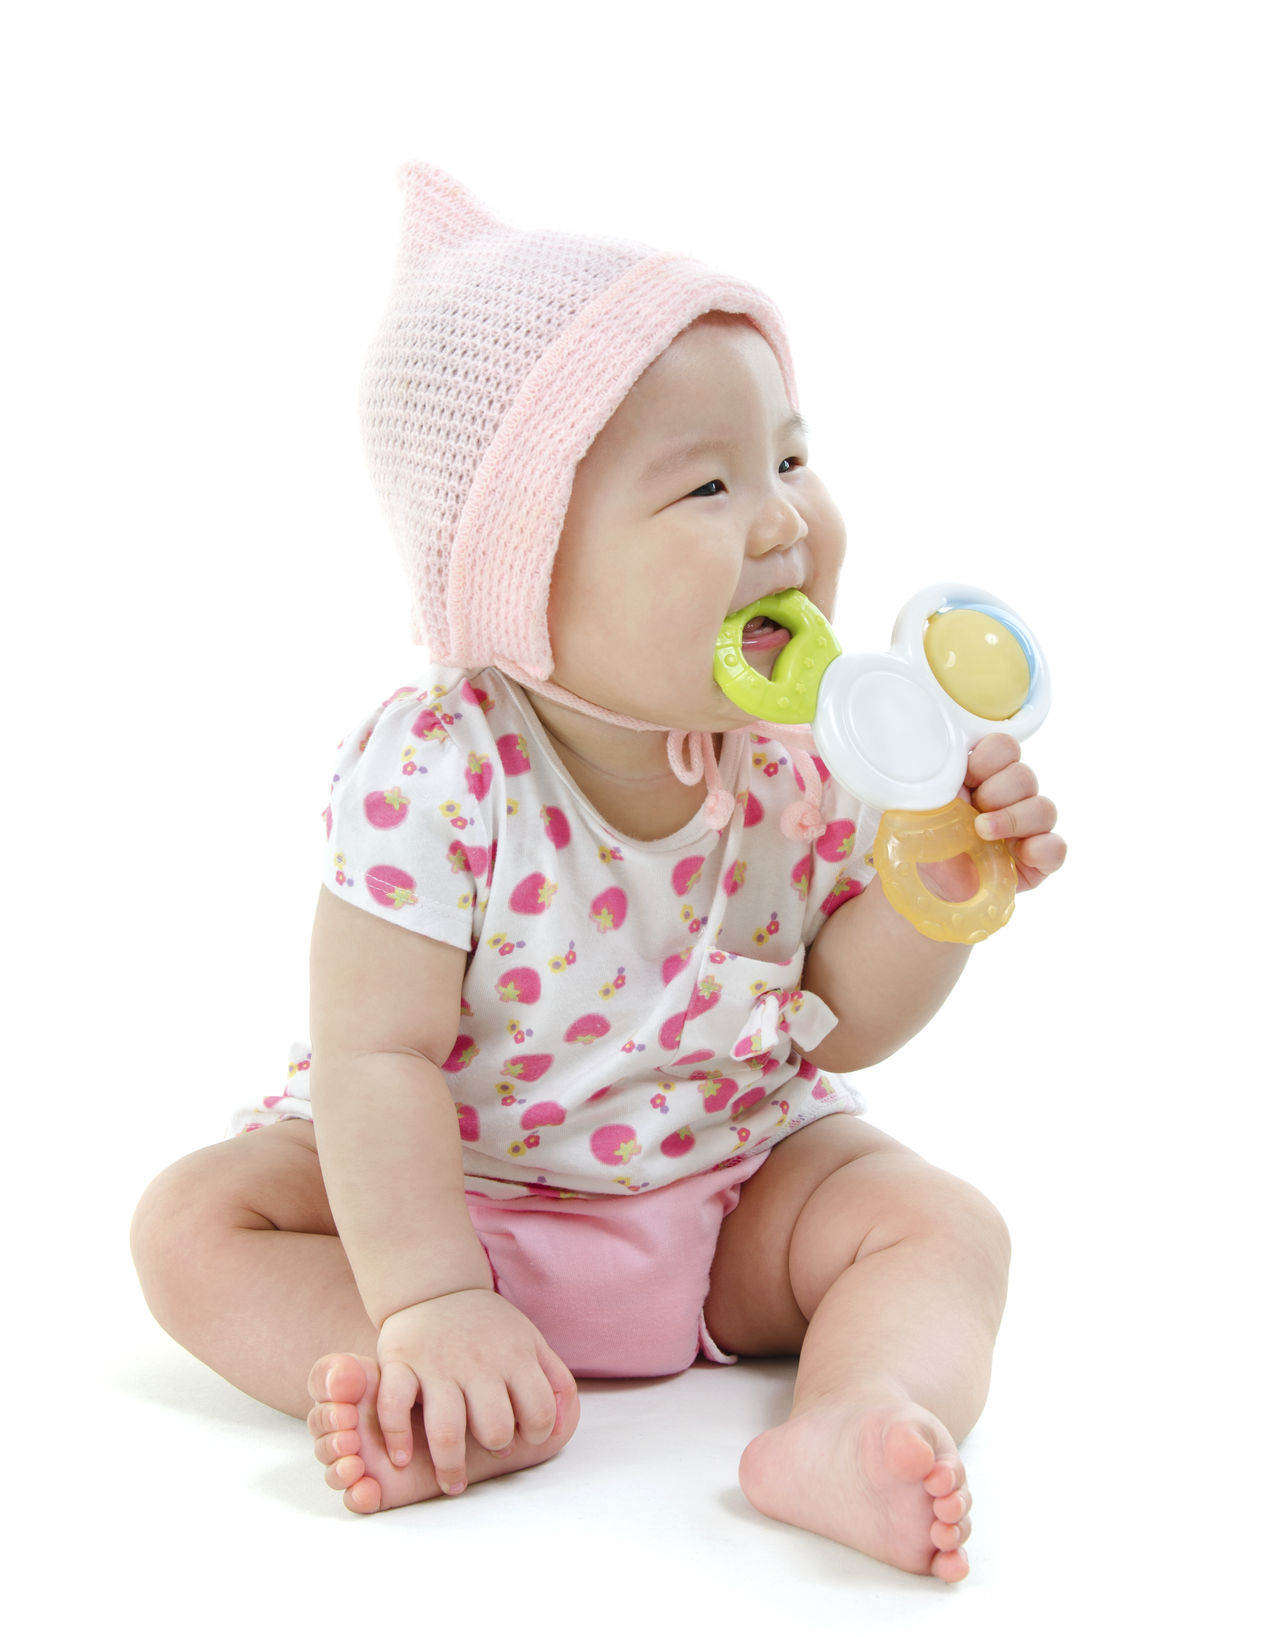 Baby Cheerful Child Childhood Children Only Day Drink Drinking Eating Flavored Ice Food And Drink Frozen Food Full Length Happiness Human Body Part Ice Cream Ice Cream Cone One Person Outdoors People Pink Color Smiling Summer Sweet Food White Background